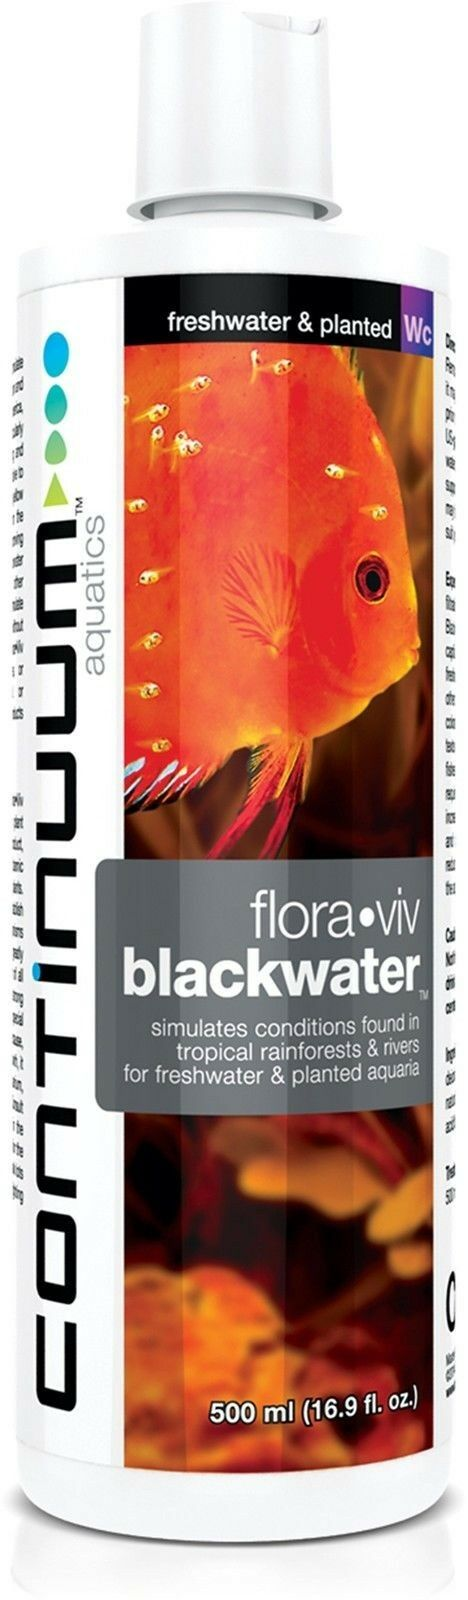 Continuum Blackwater For Freshwater & Planted Tanks